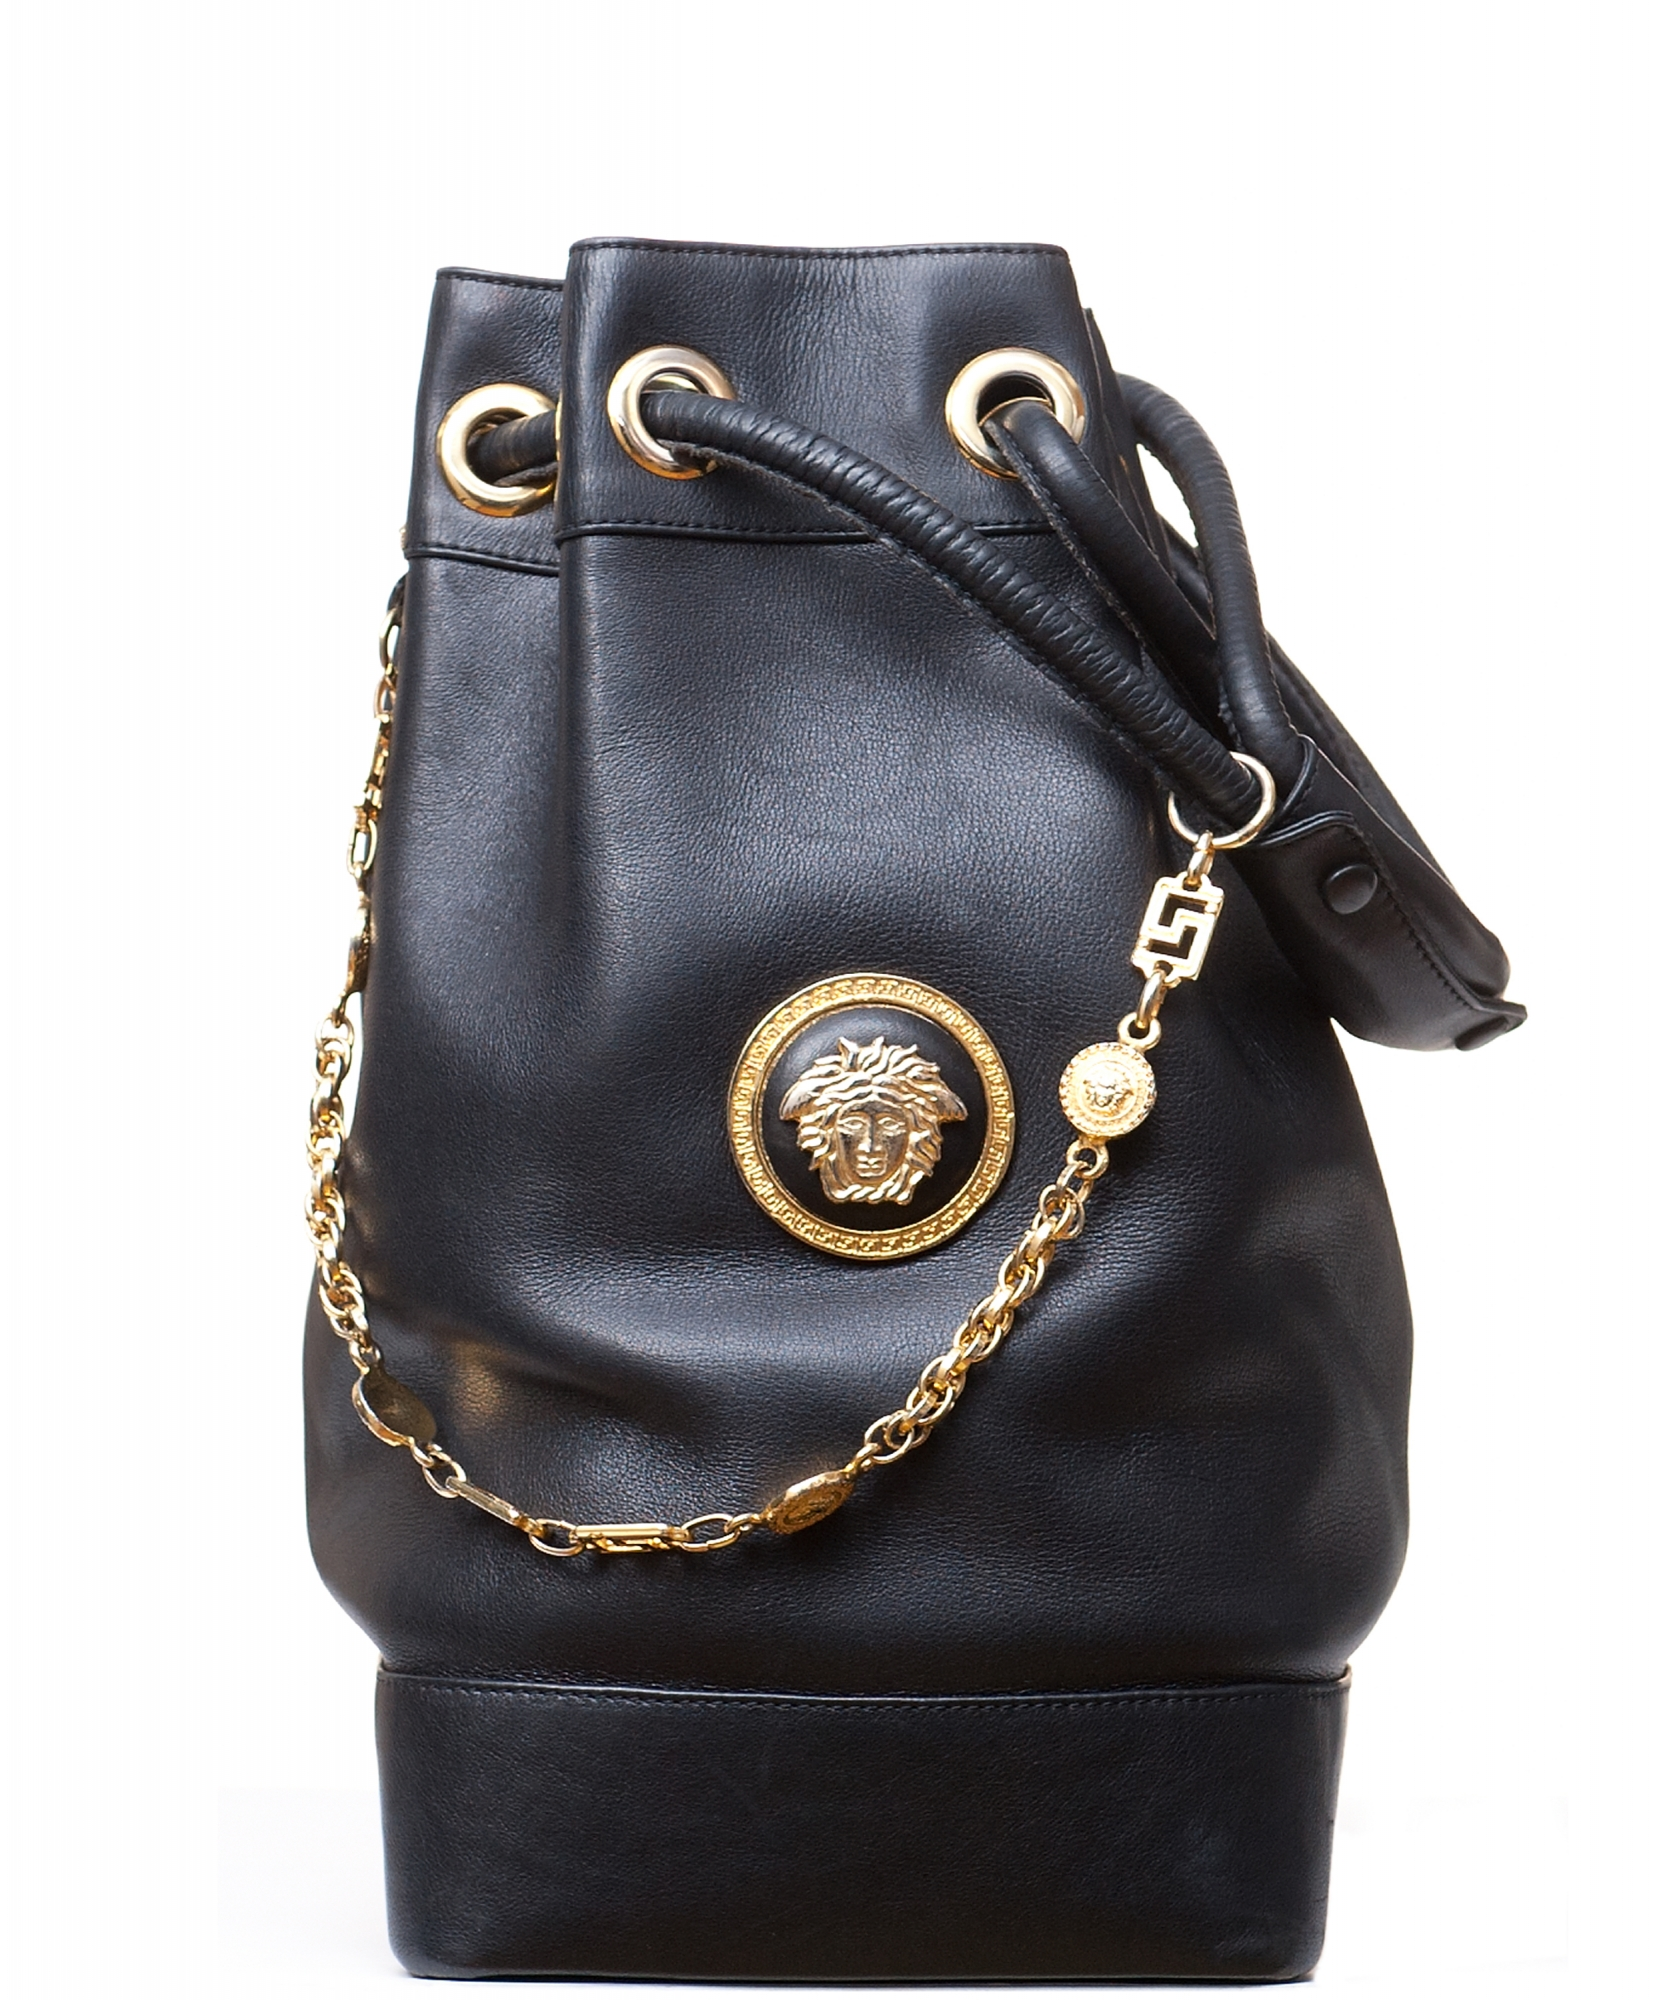 9b31b2268064f ... Gianni Versace Couture Black Leather Medusa Drawstring Bag. Tap to  expand